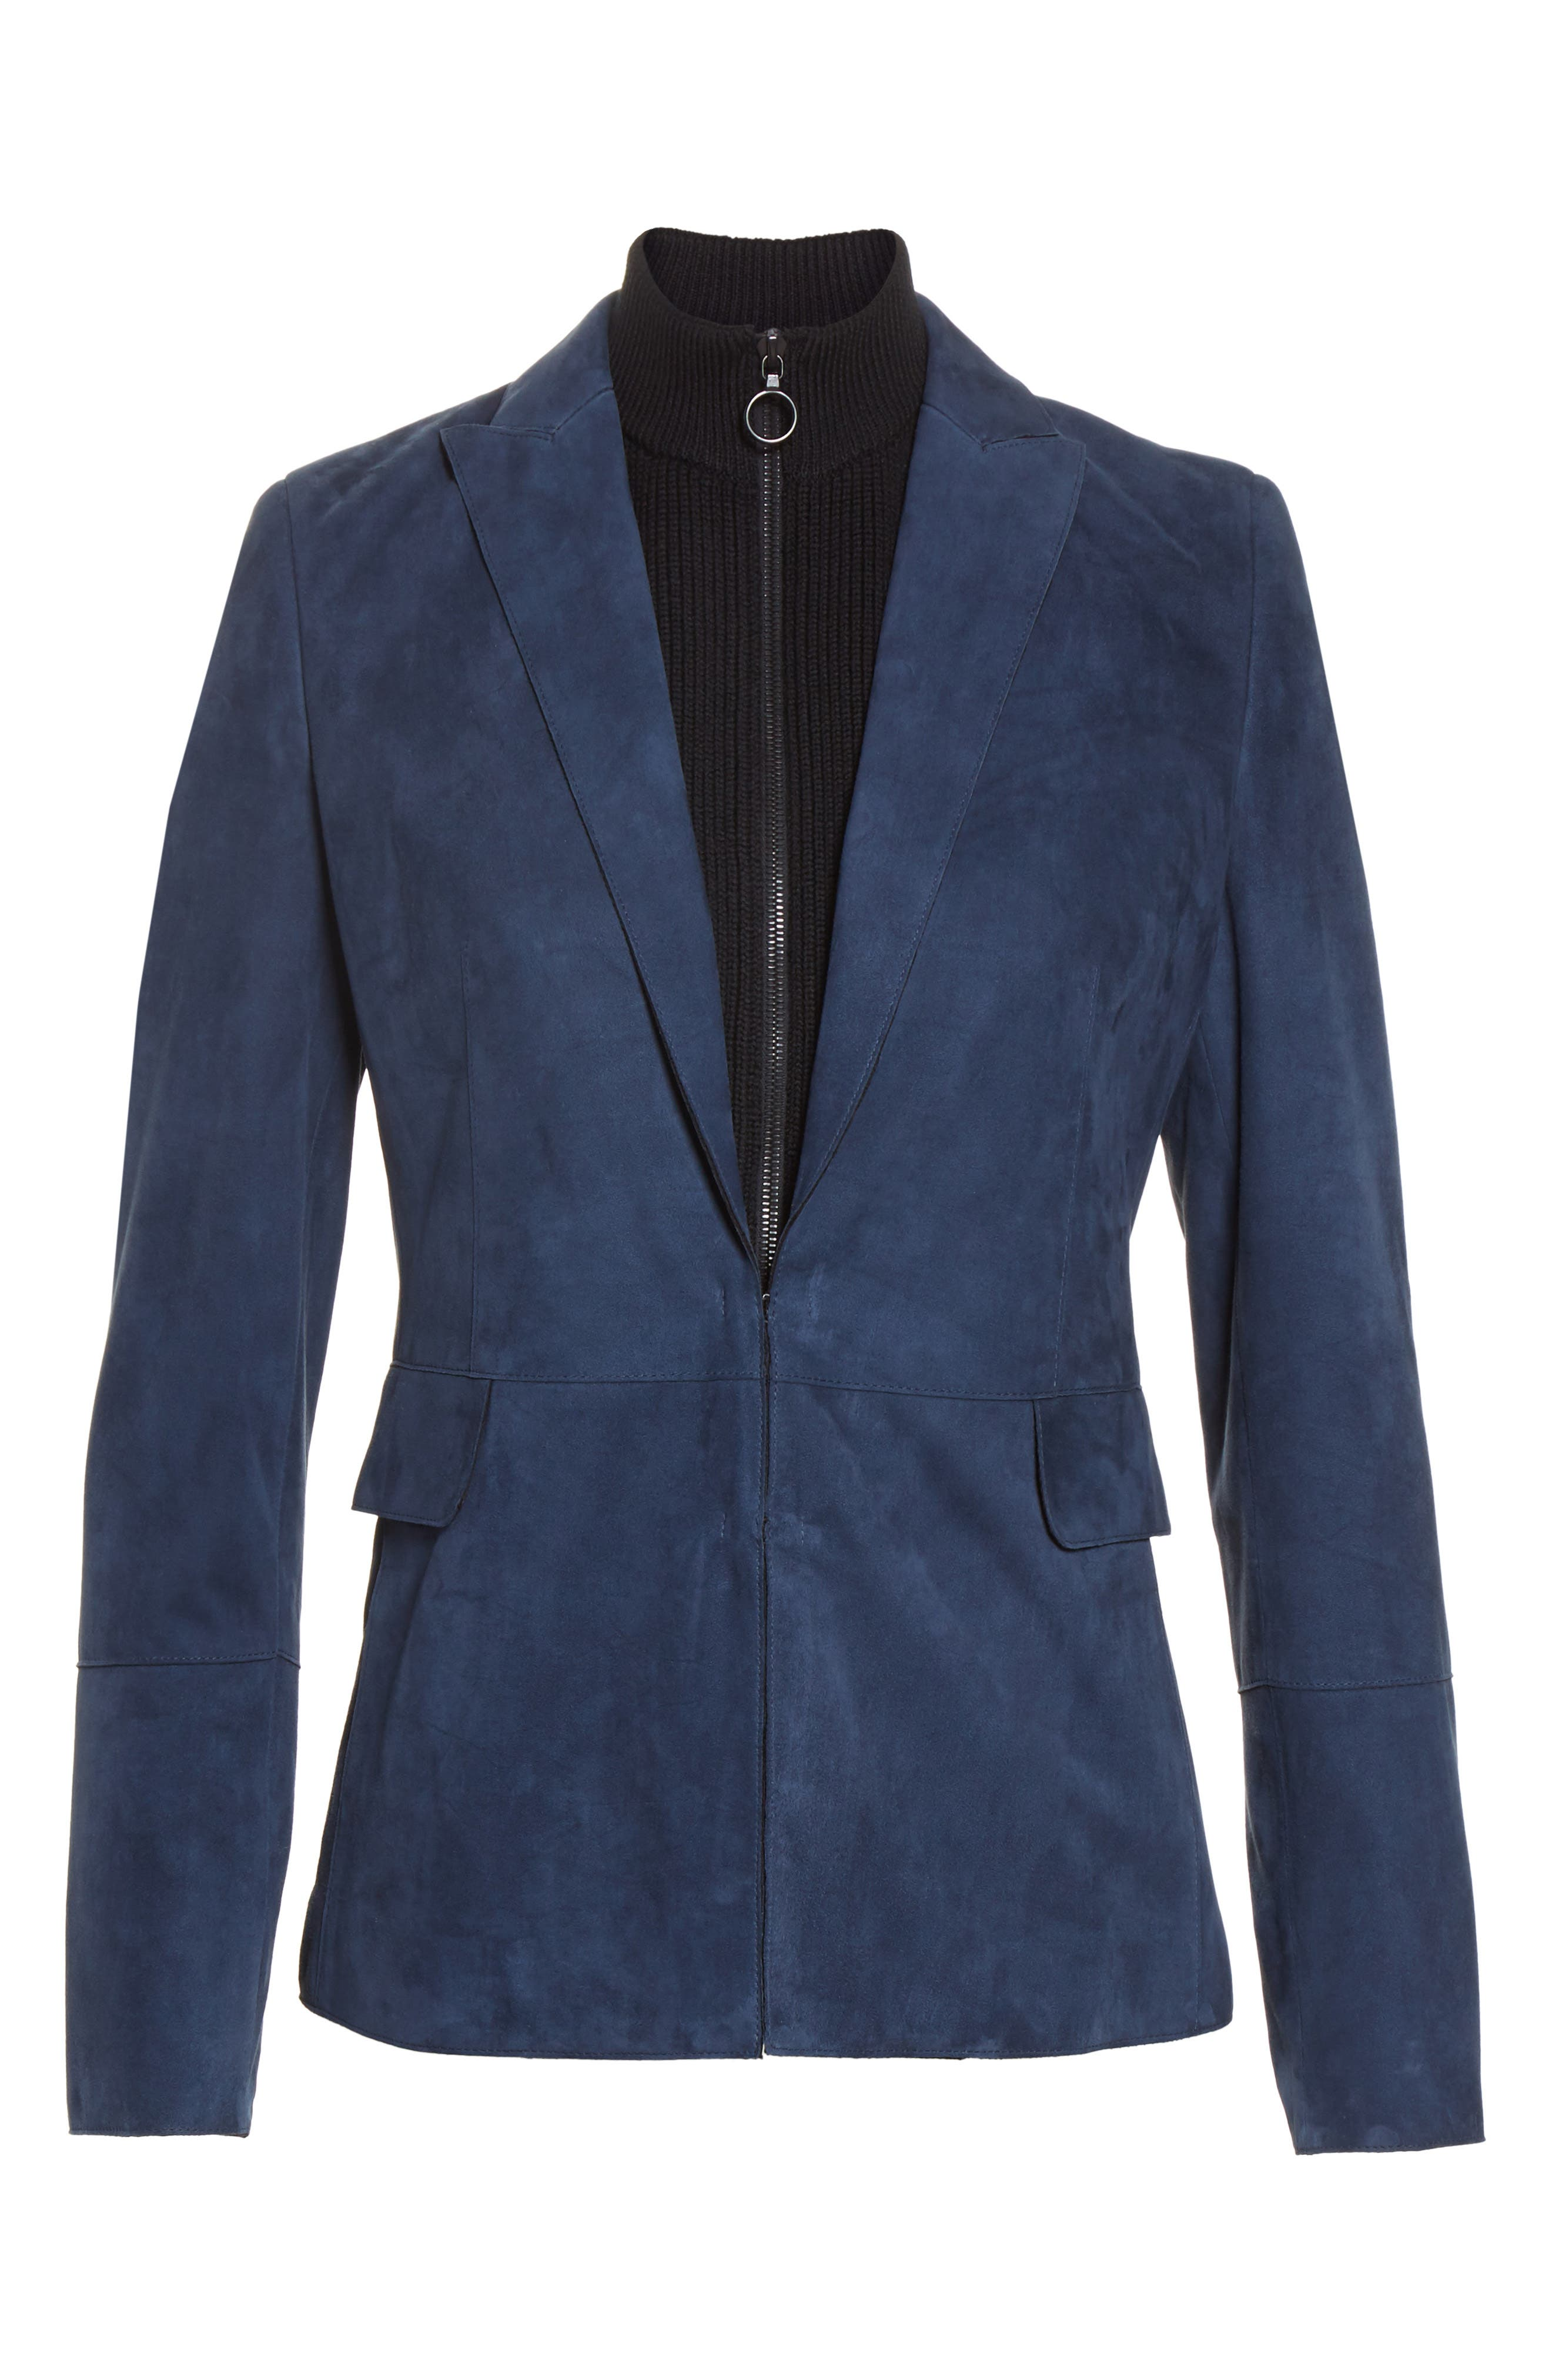 Suede Blazer with Removable Knit Insert,                             Alternate thumbnail 3, color,                             Solid Blue Denim